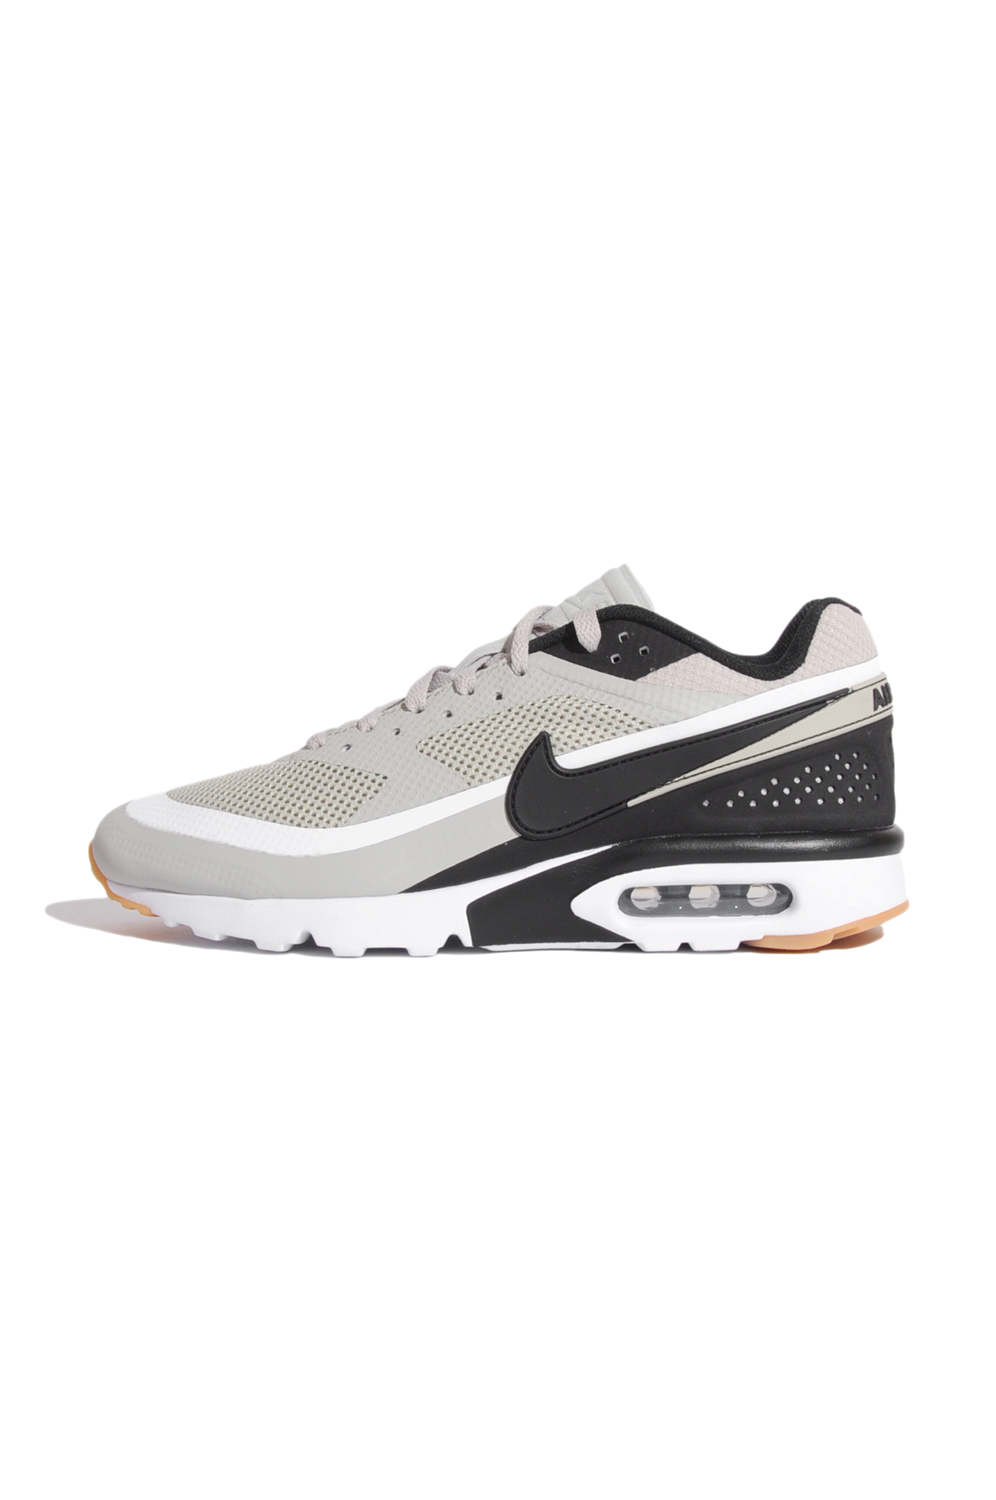 画像2: 【NIKE】AIR MAX BW ULTRA